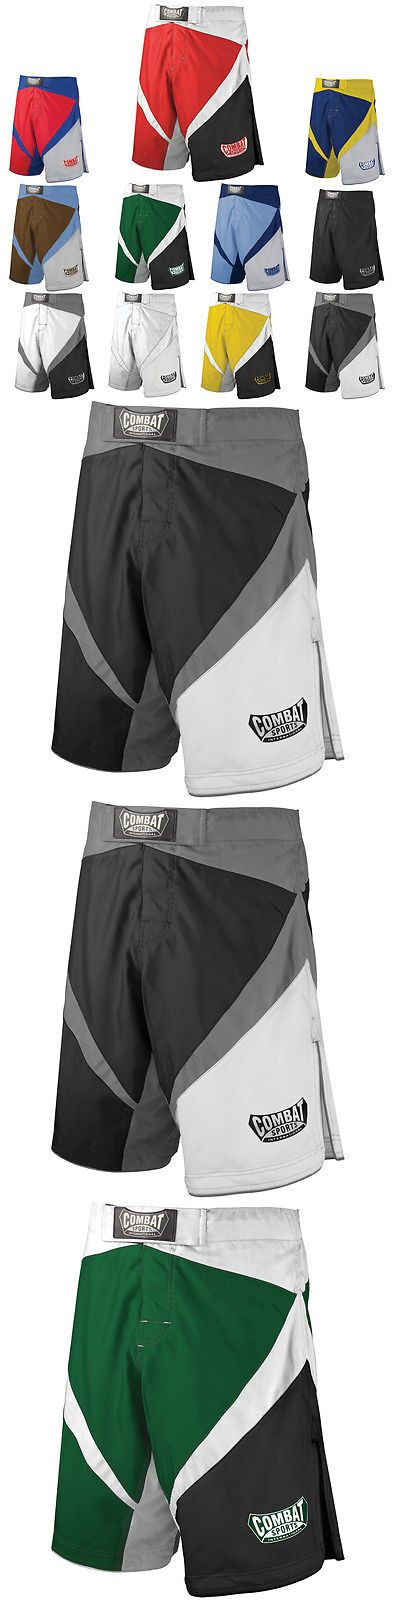 Other Combat Sport Clothing 73988: Combat Sports Fight Mma Boardshorts -> BUY IT NOW ONLY: $33.99 on eBay!